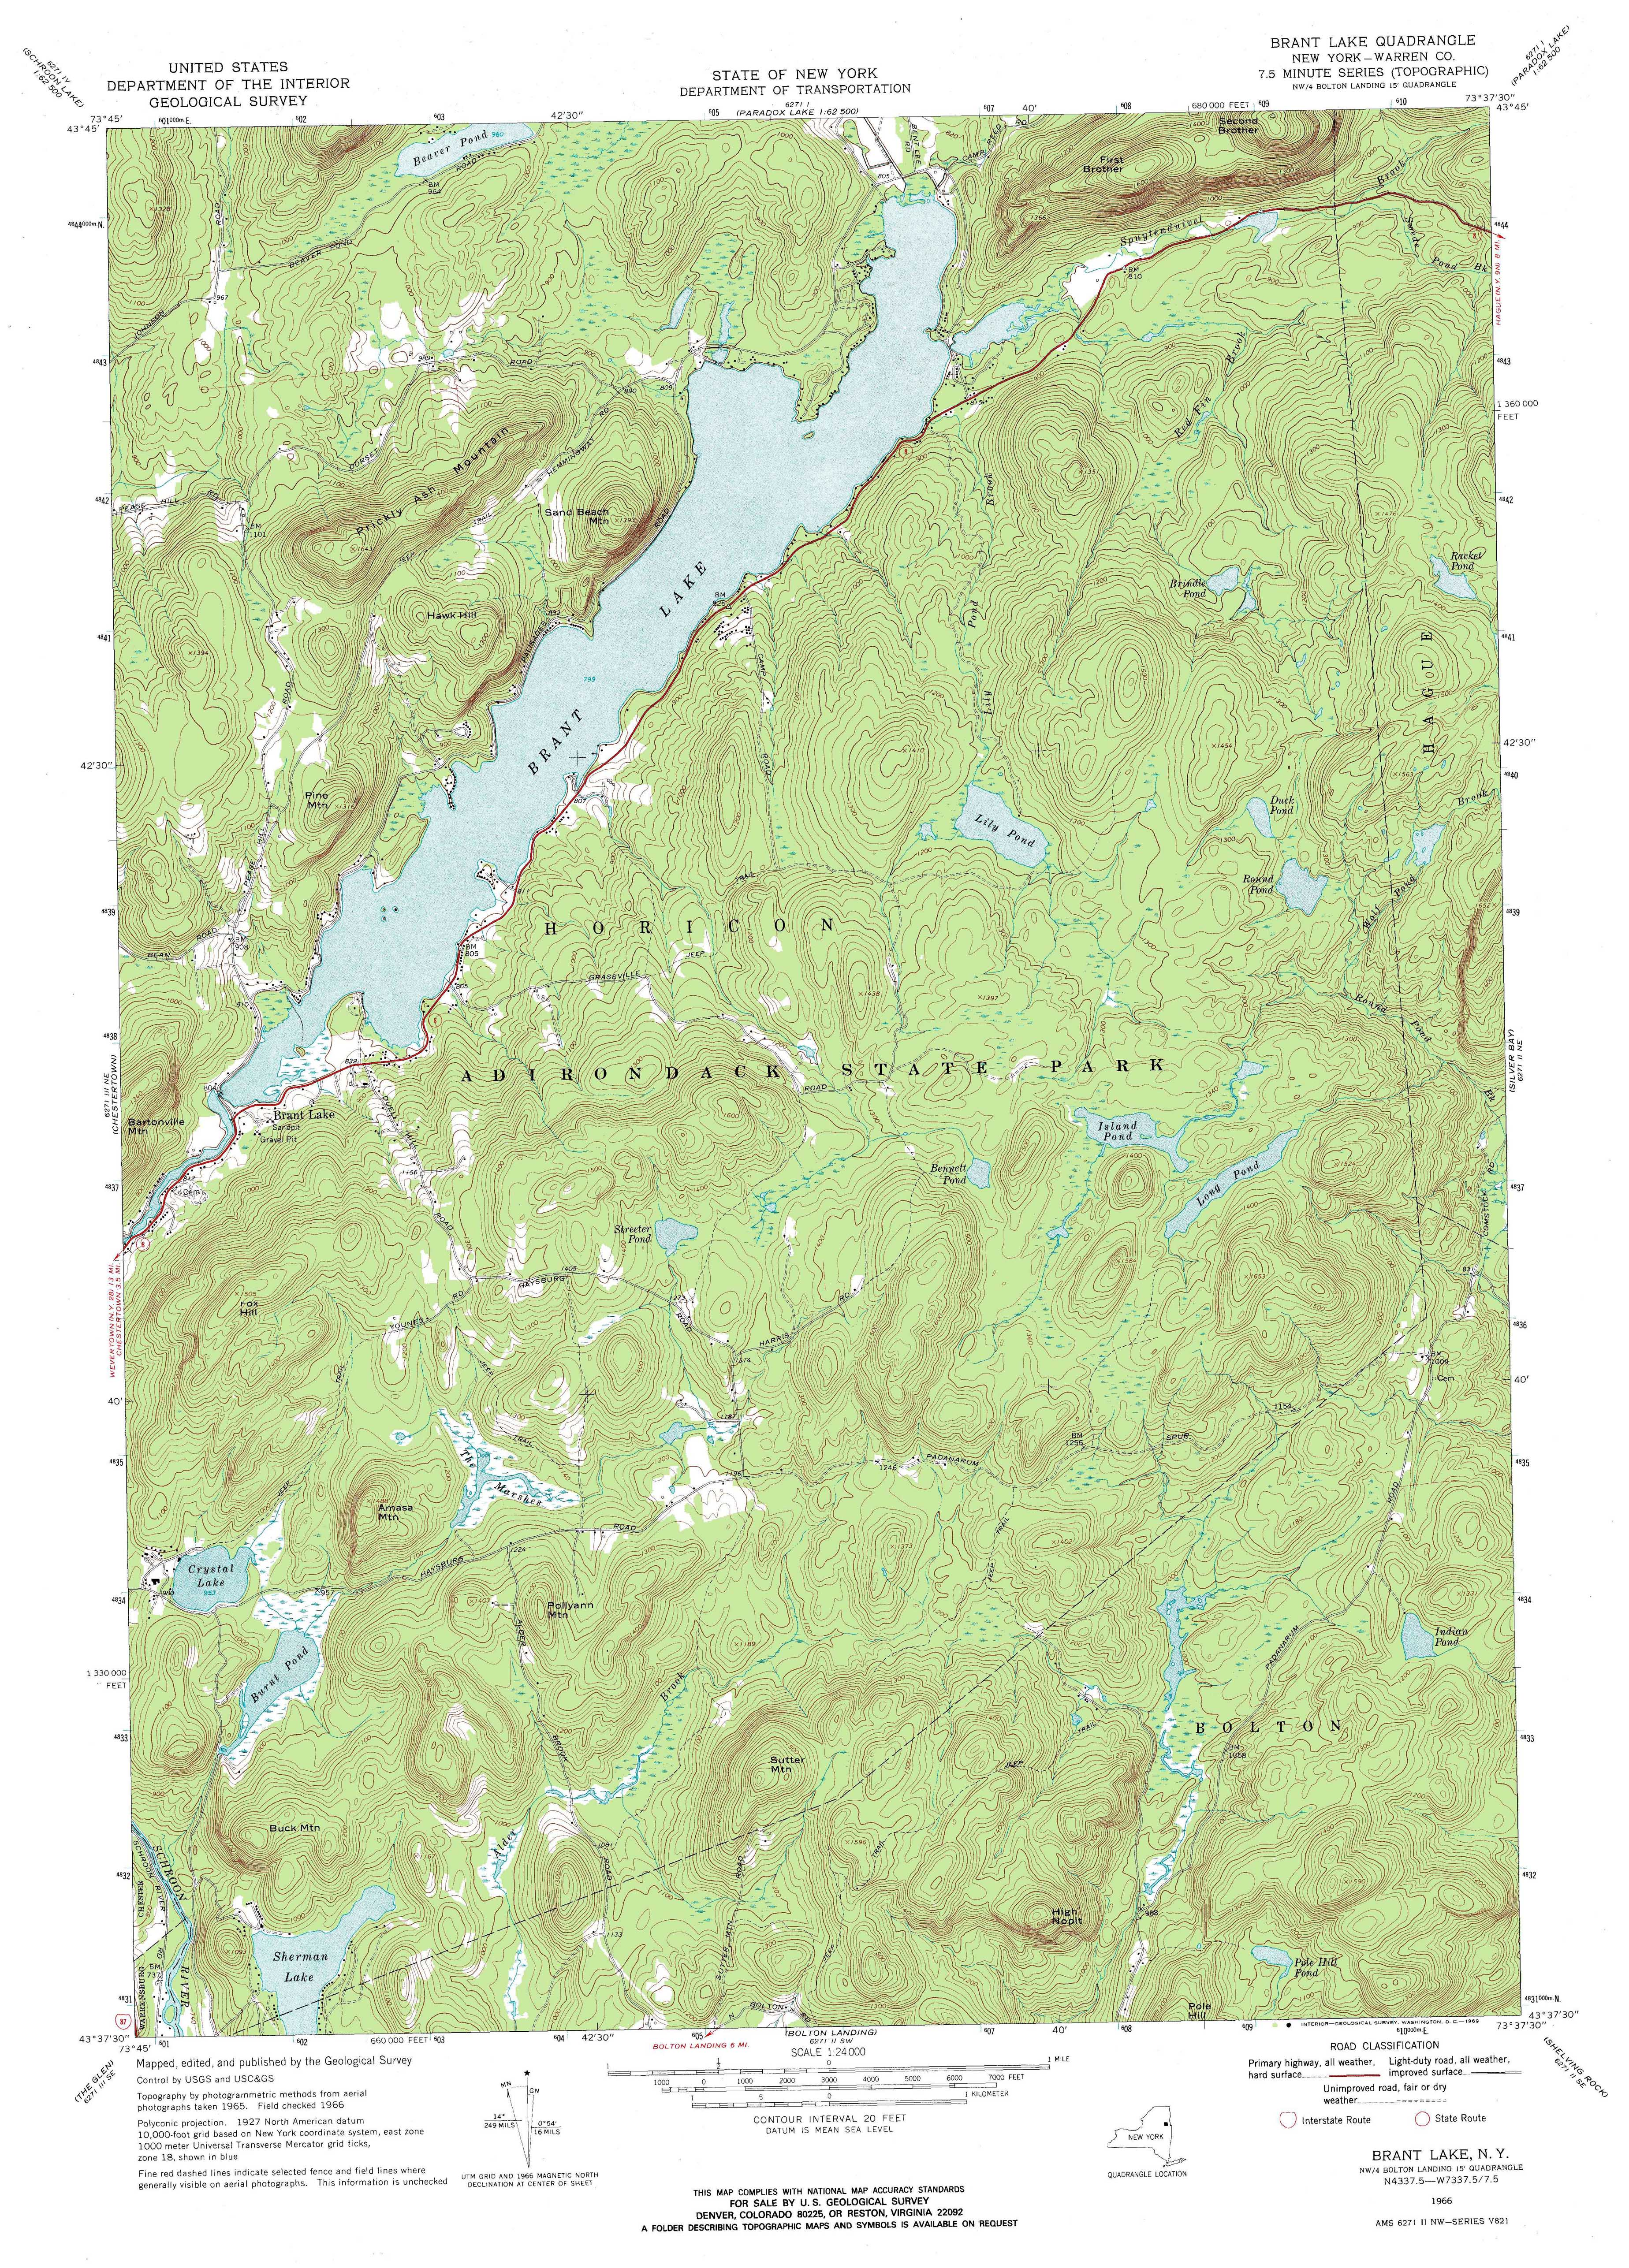 New York Topo Maps 75 minute Topographic Maps 124000 scale